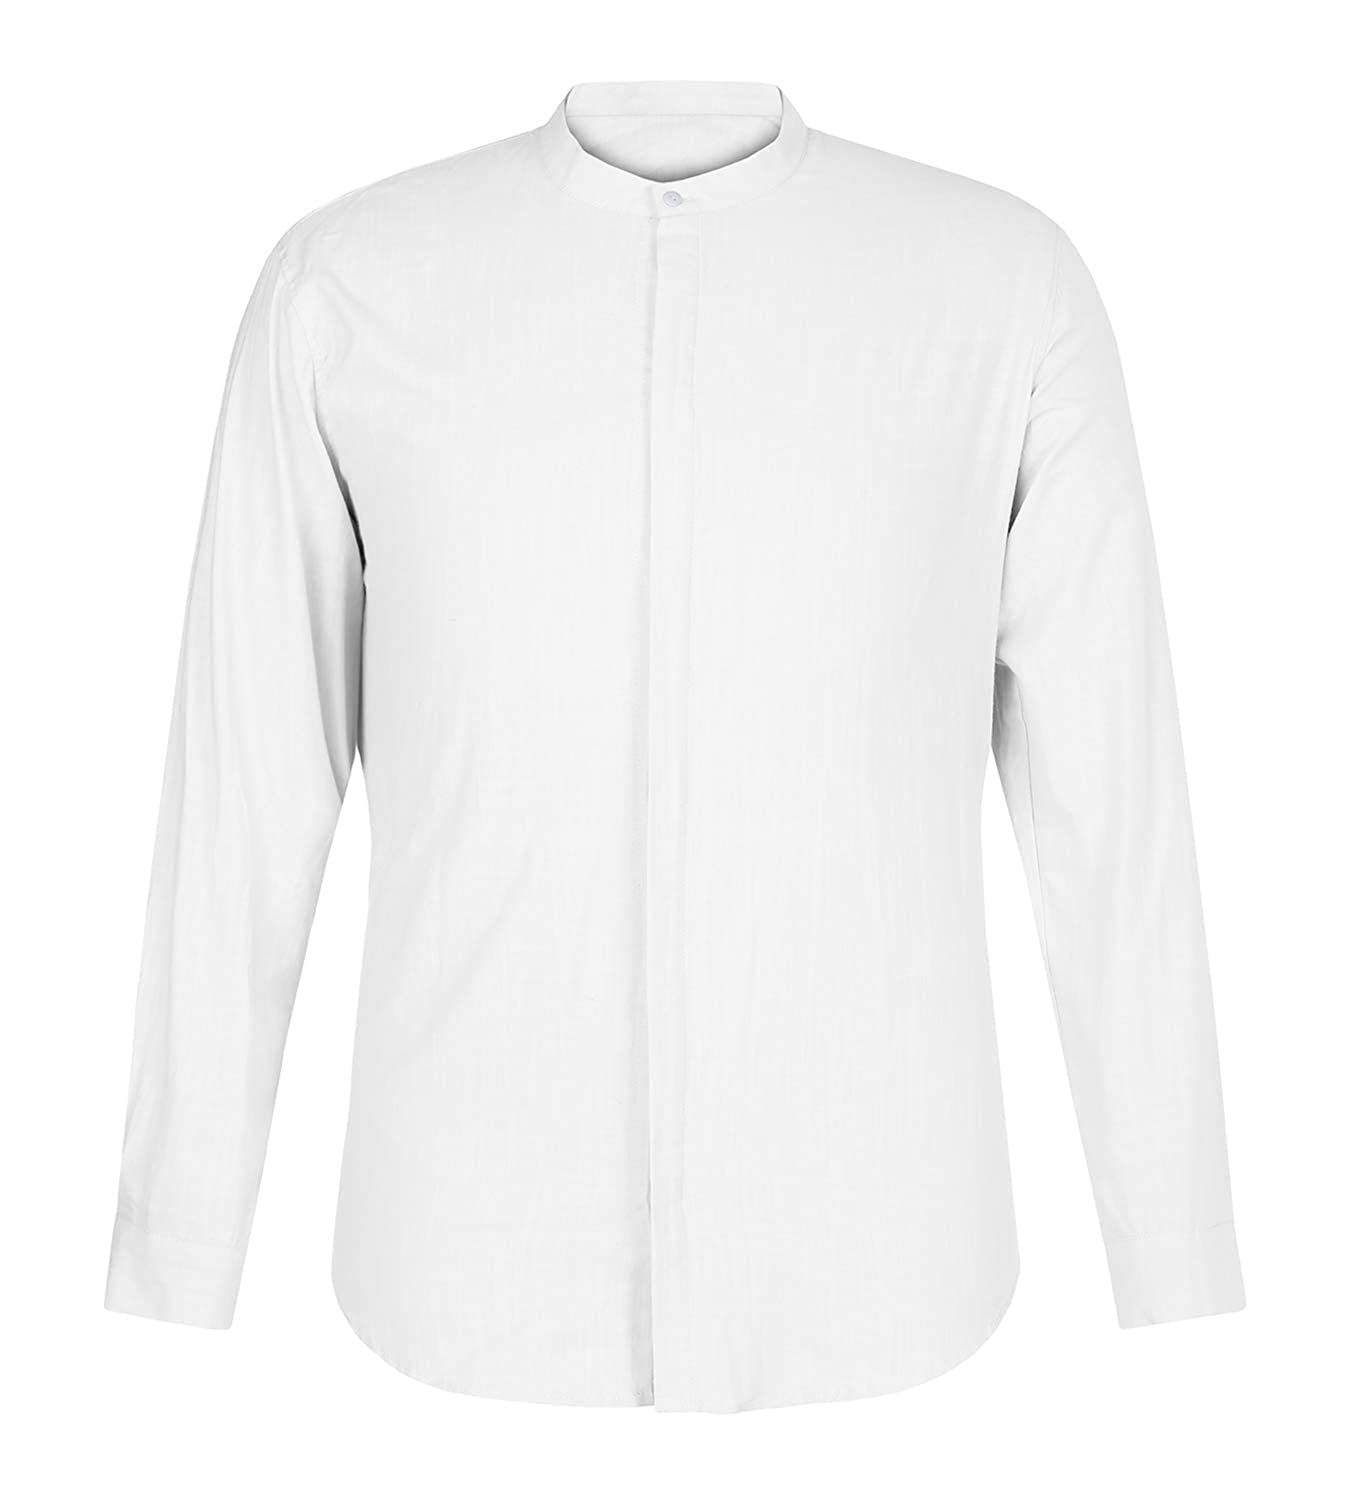 dd32685921a Makkrom Mens Casual Loose Linen Long Sleeve Shirts Button Up Cotton Summer  Beach T Shirt Tops at Amazon Men s Clothing store